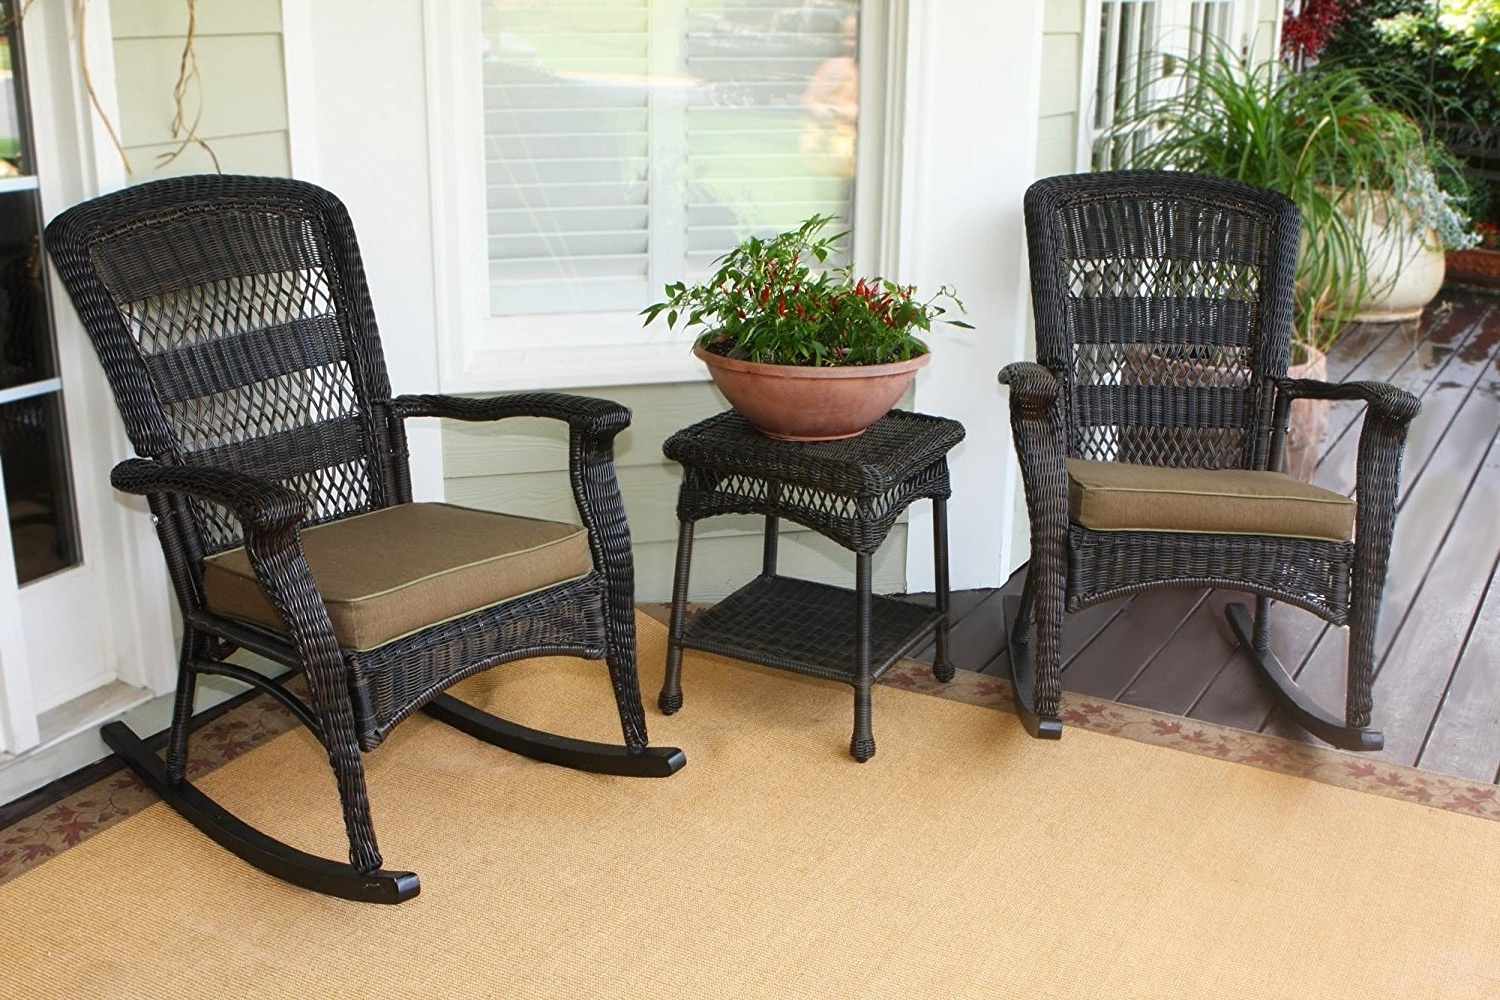 Patio Rocking Chairs With Cushions Within Newest Outdoor Rocking Chair Cushions Home : Beautiful Outdoor Rocking (View 16 of 20)